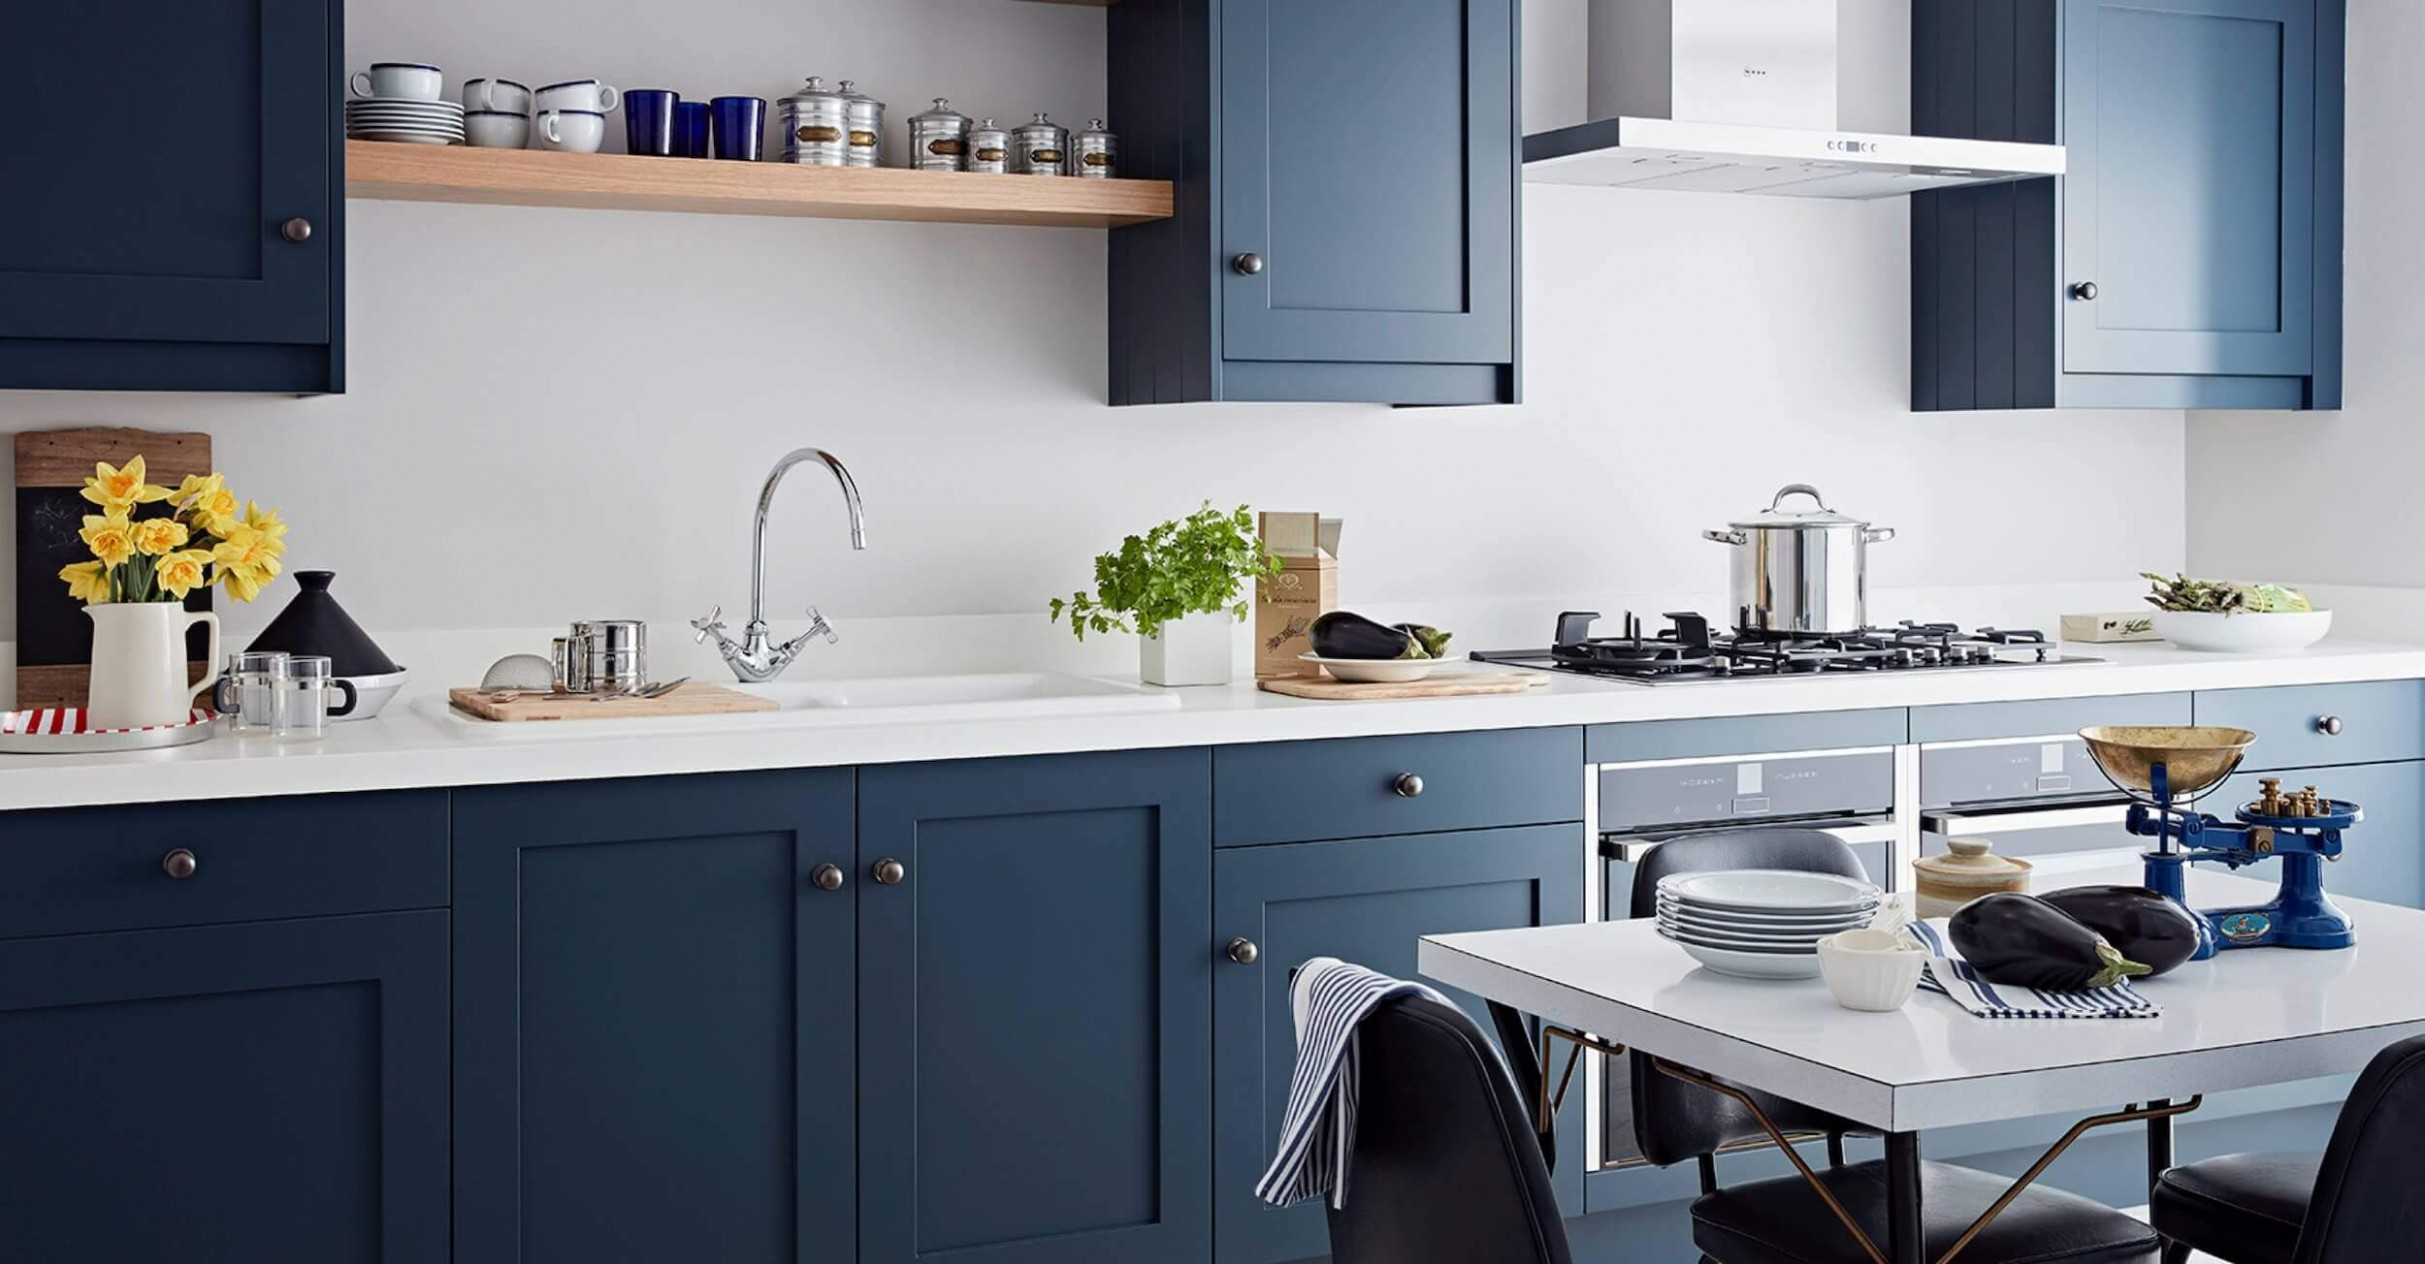 Freestanding Kitchen Pantries  John Lewis of Hungerford - Free Standing Kitchen Cabinets John Lewis